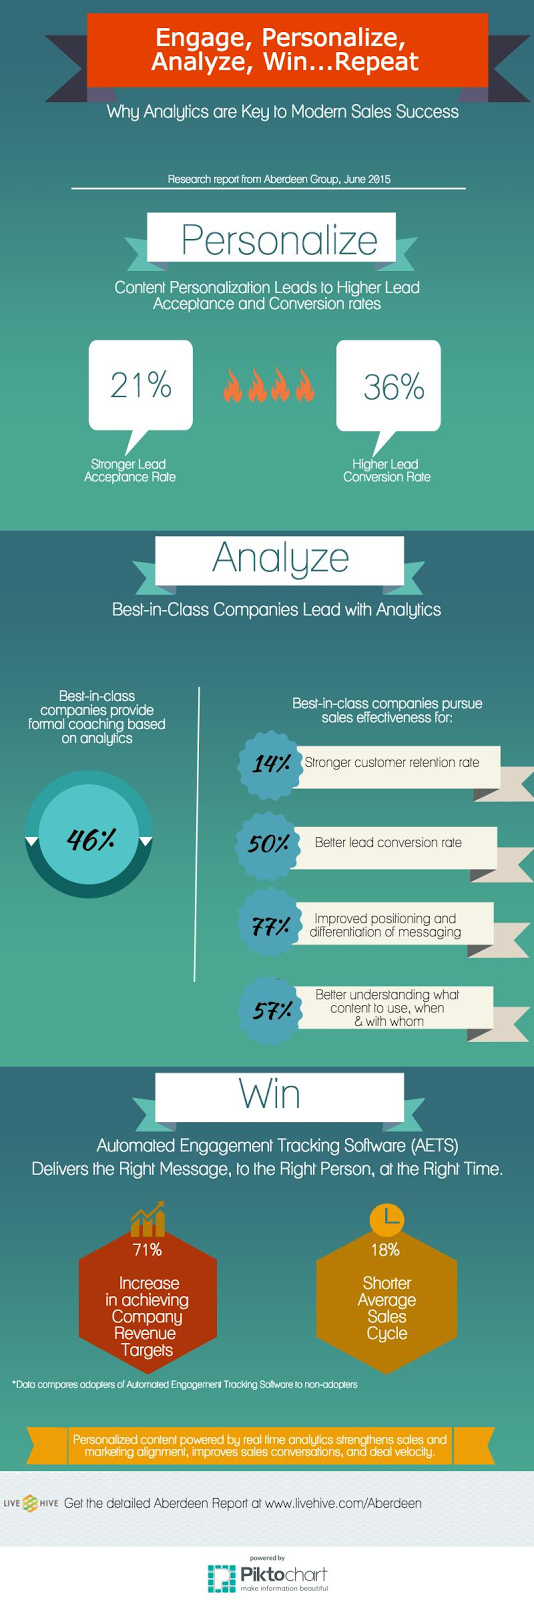 """ marketing automation and conversion rate roi'"